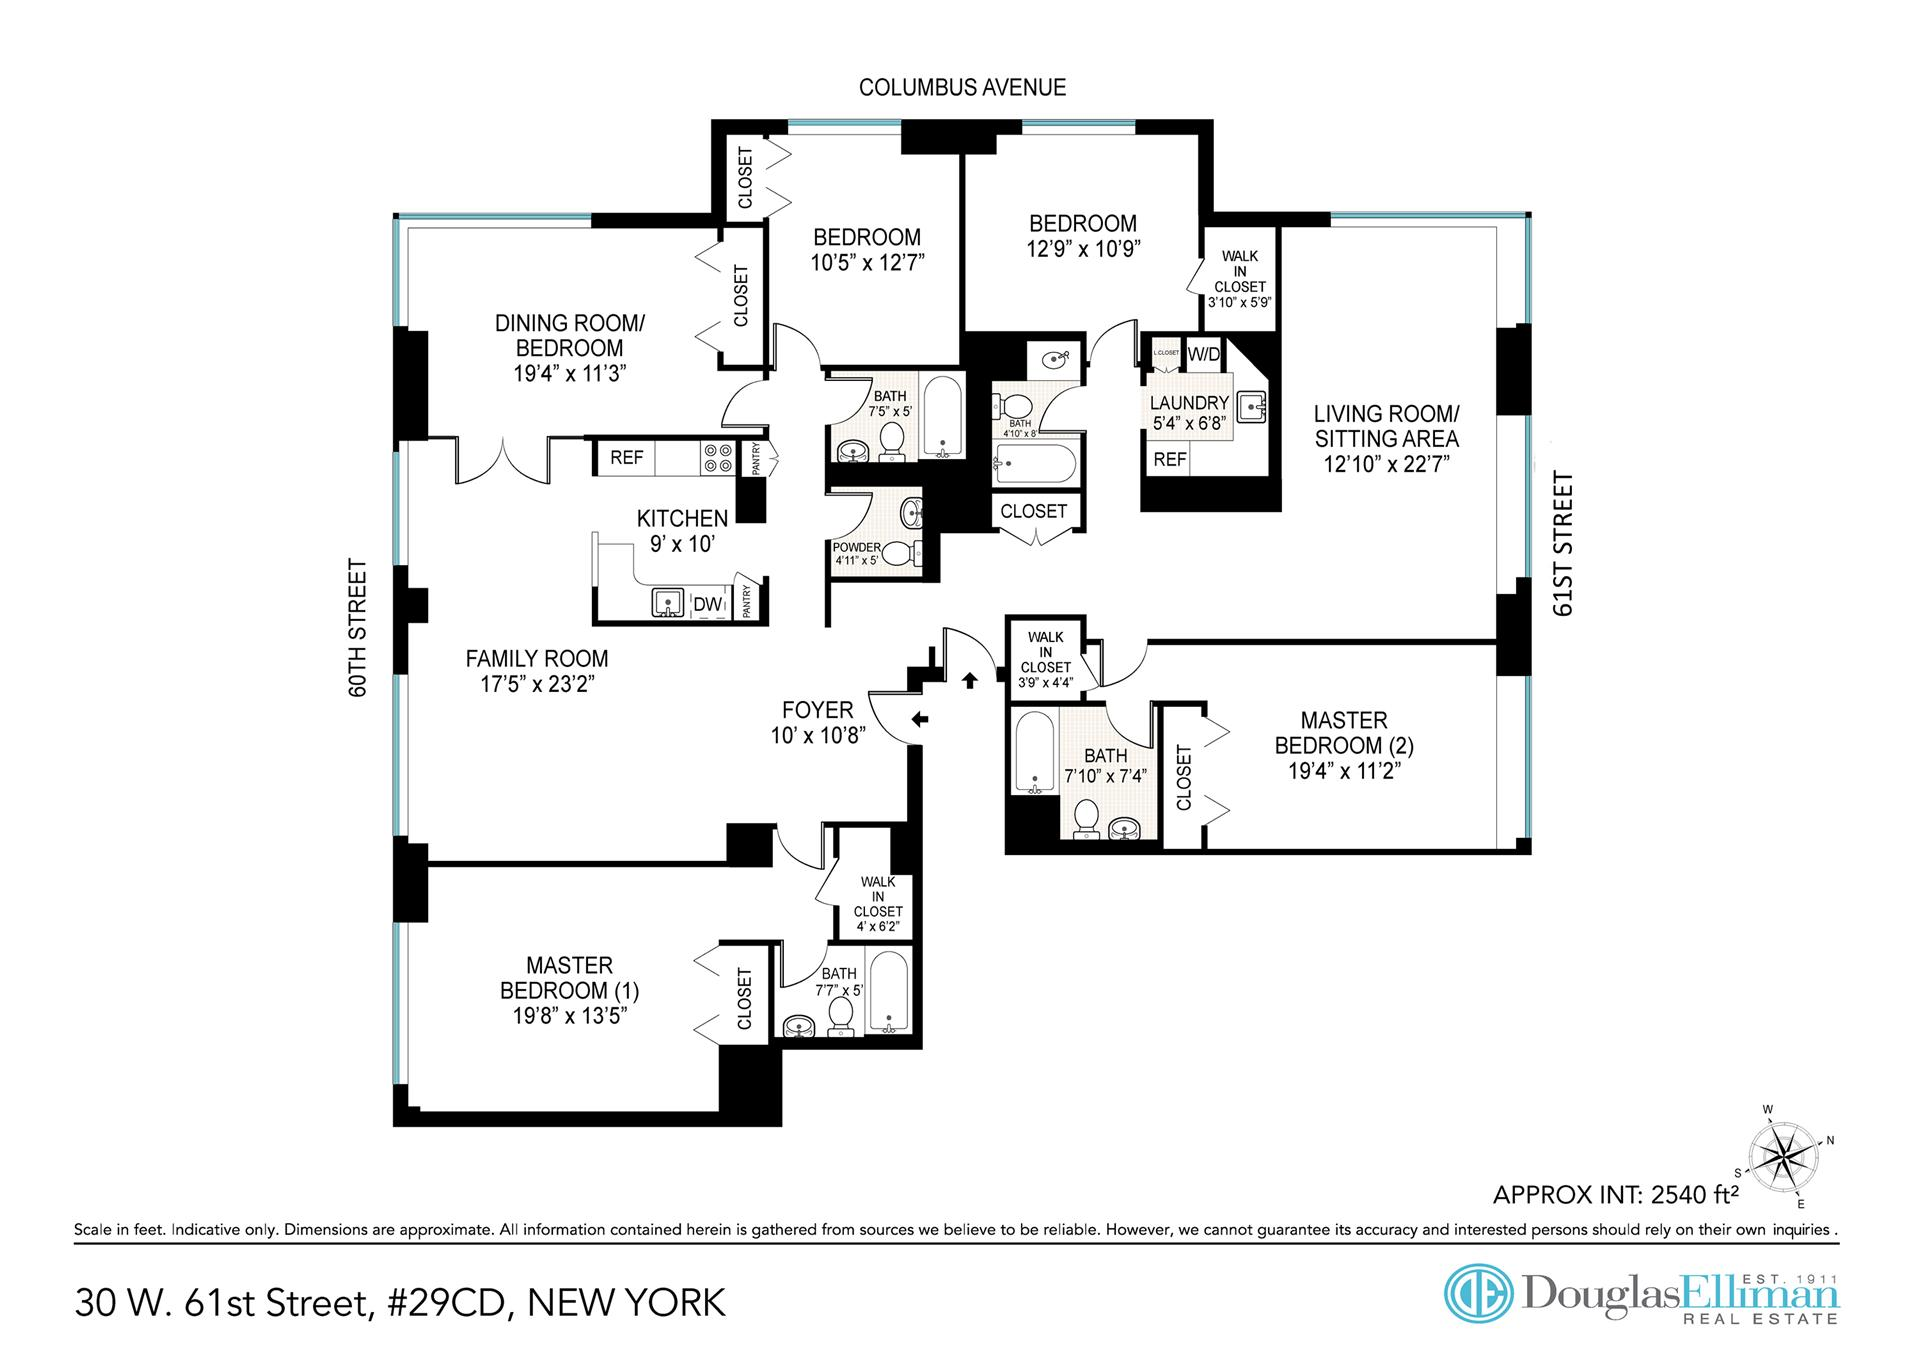 Floor plan of THE BEAUMONT, 30 West 61st St, 29CD - Lincoln Square, New York